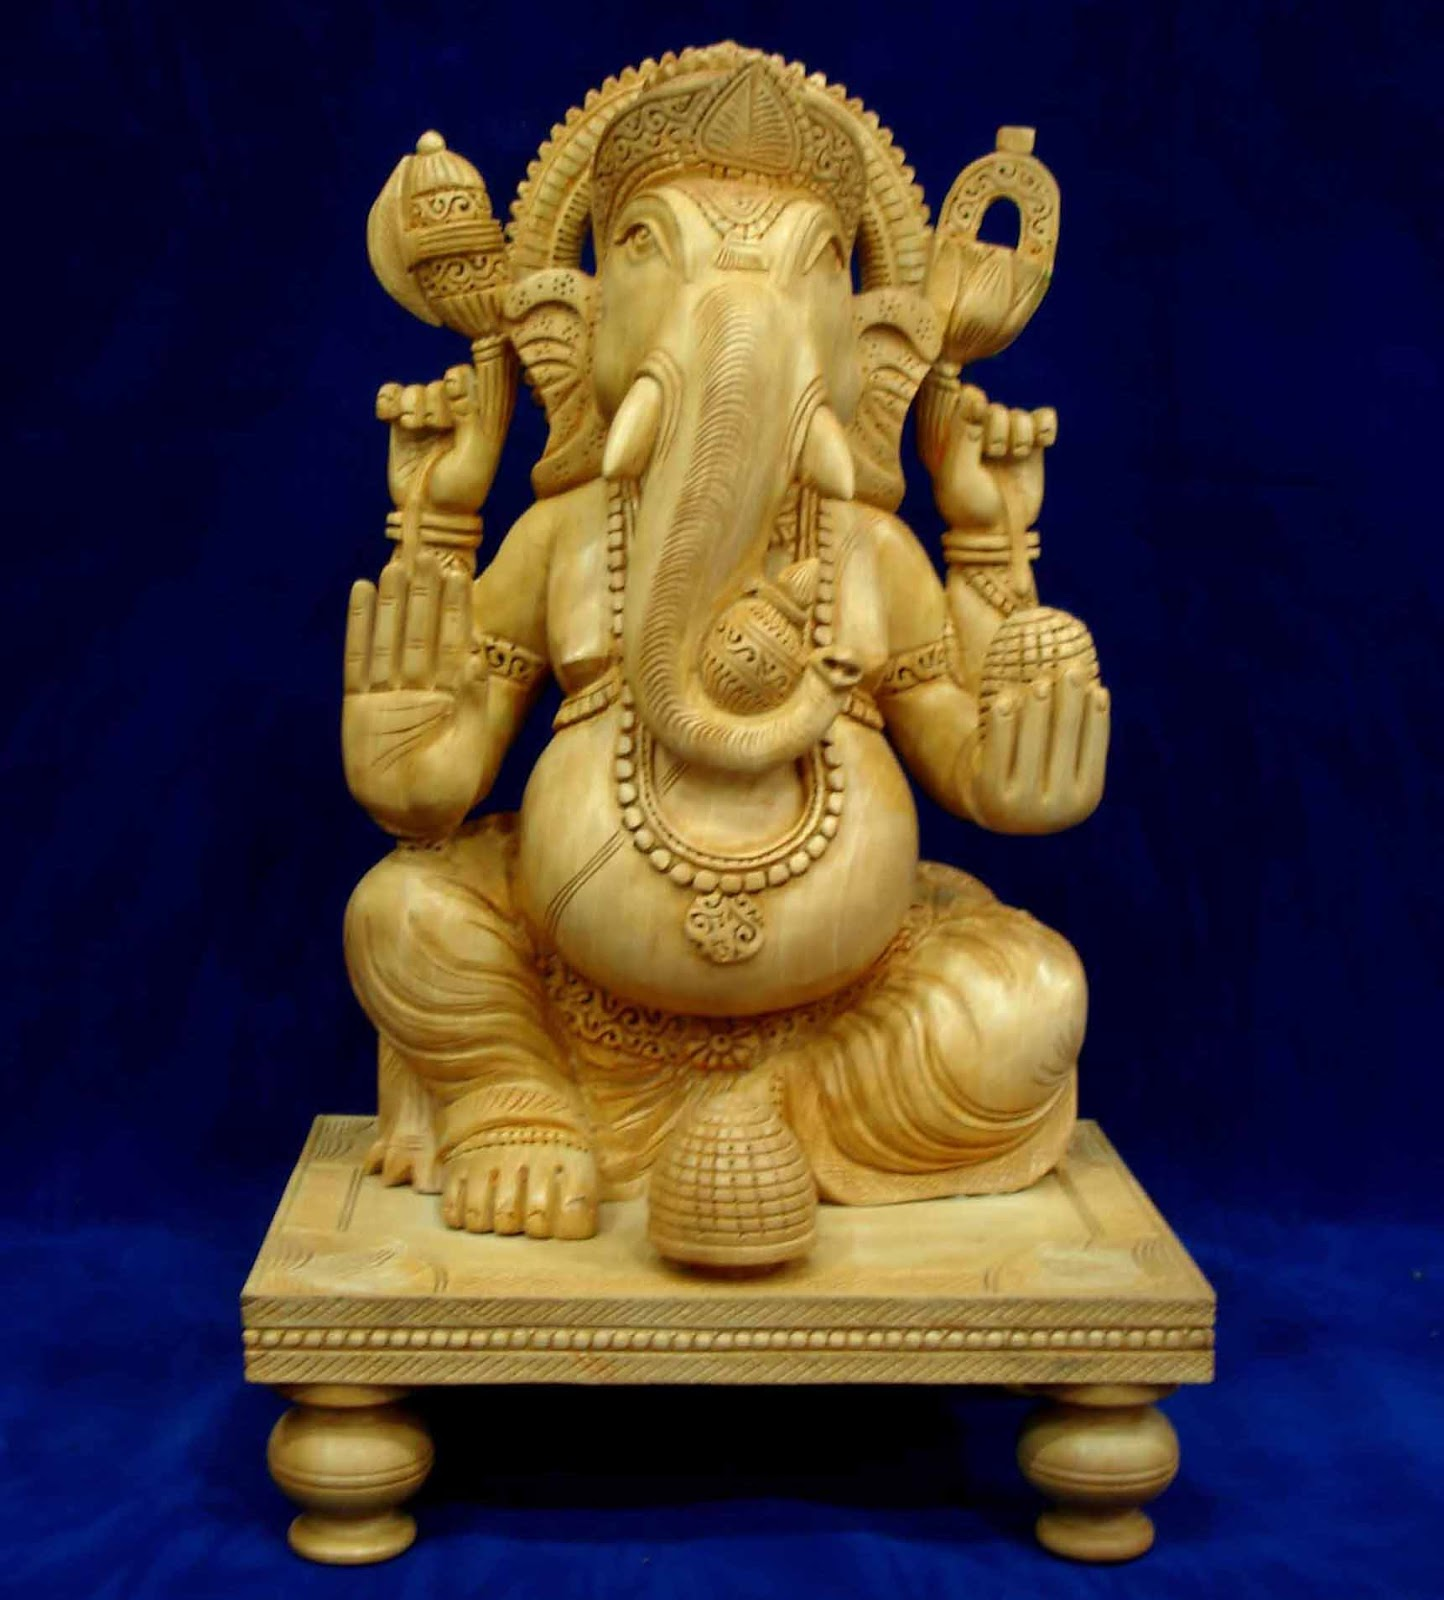 Gods Wallpaper: Letest Lord Ganesh Pictures Full HD Wallpapers Can Make